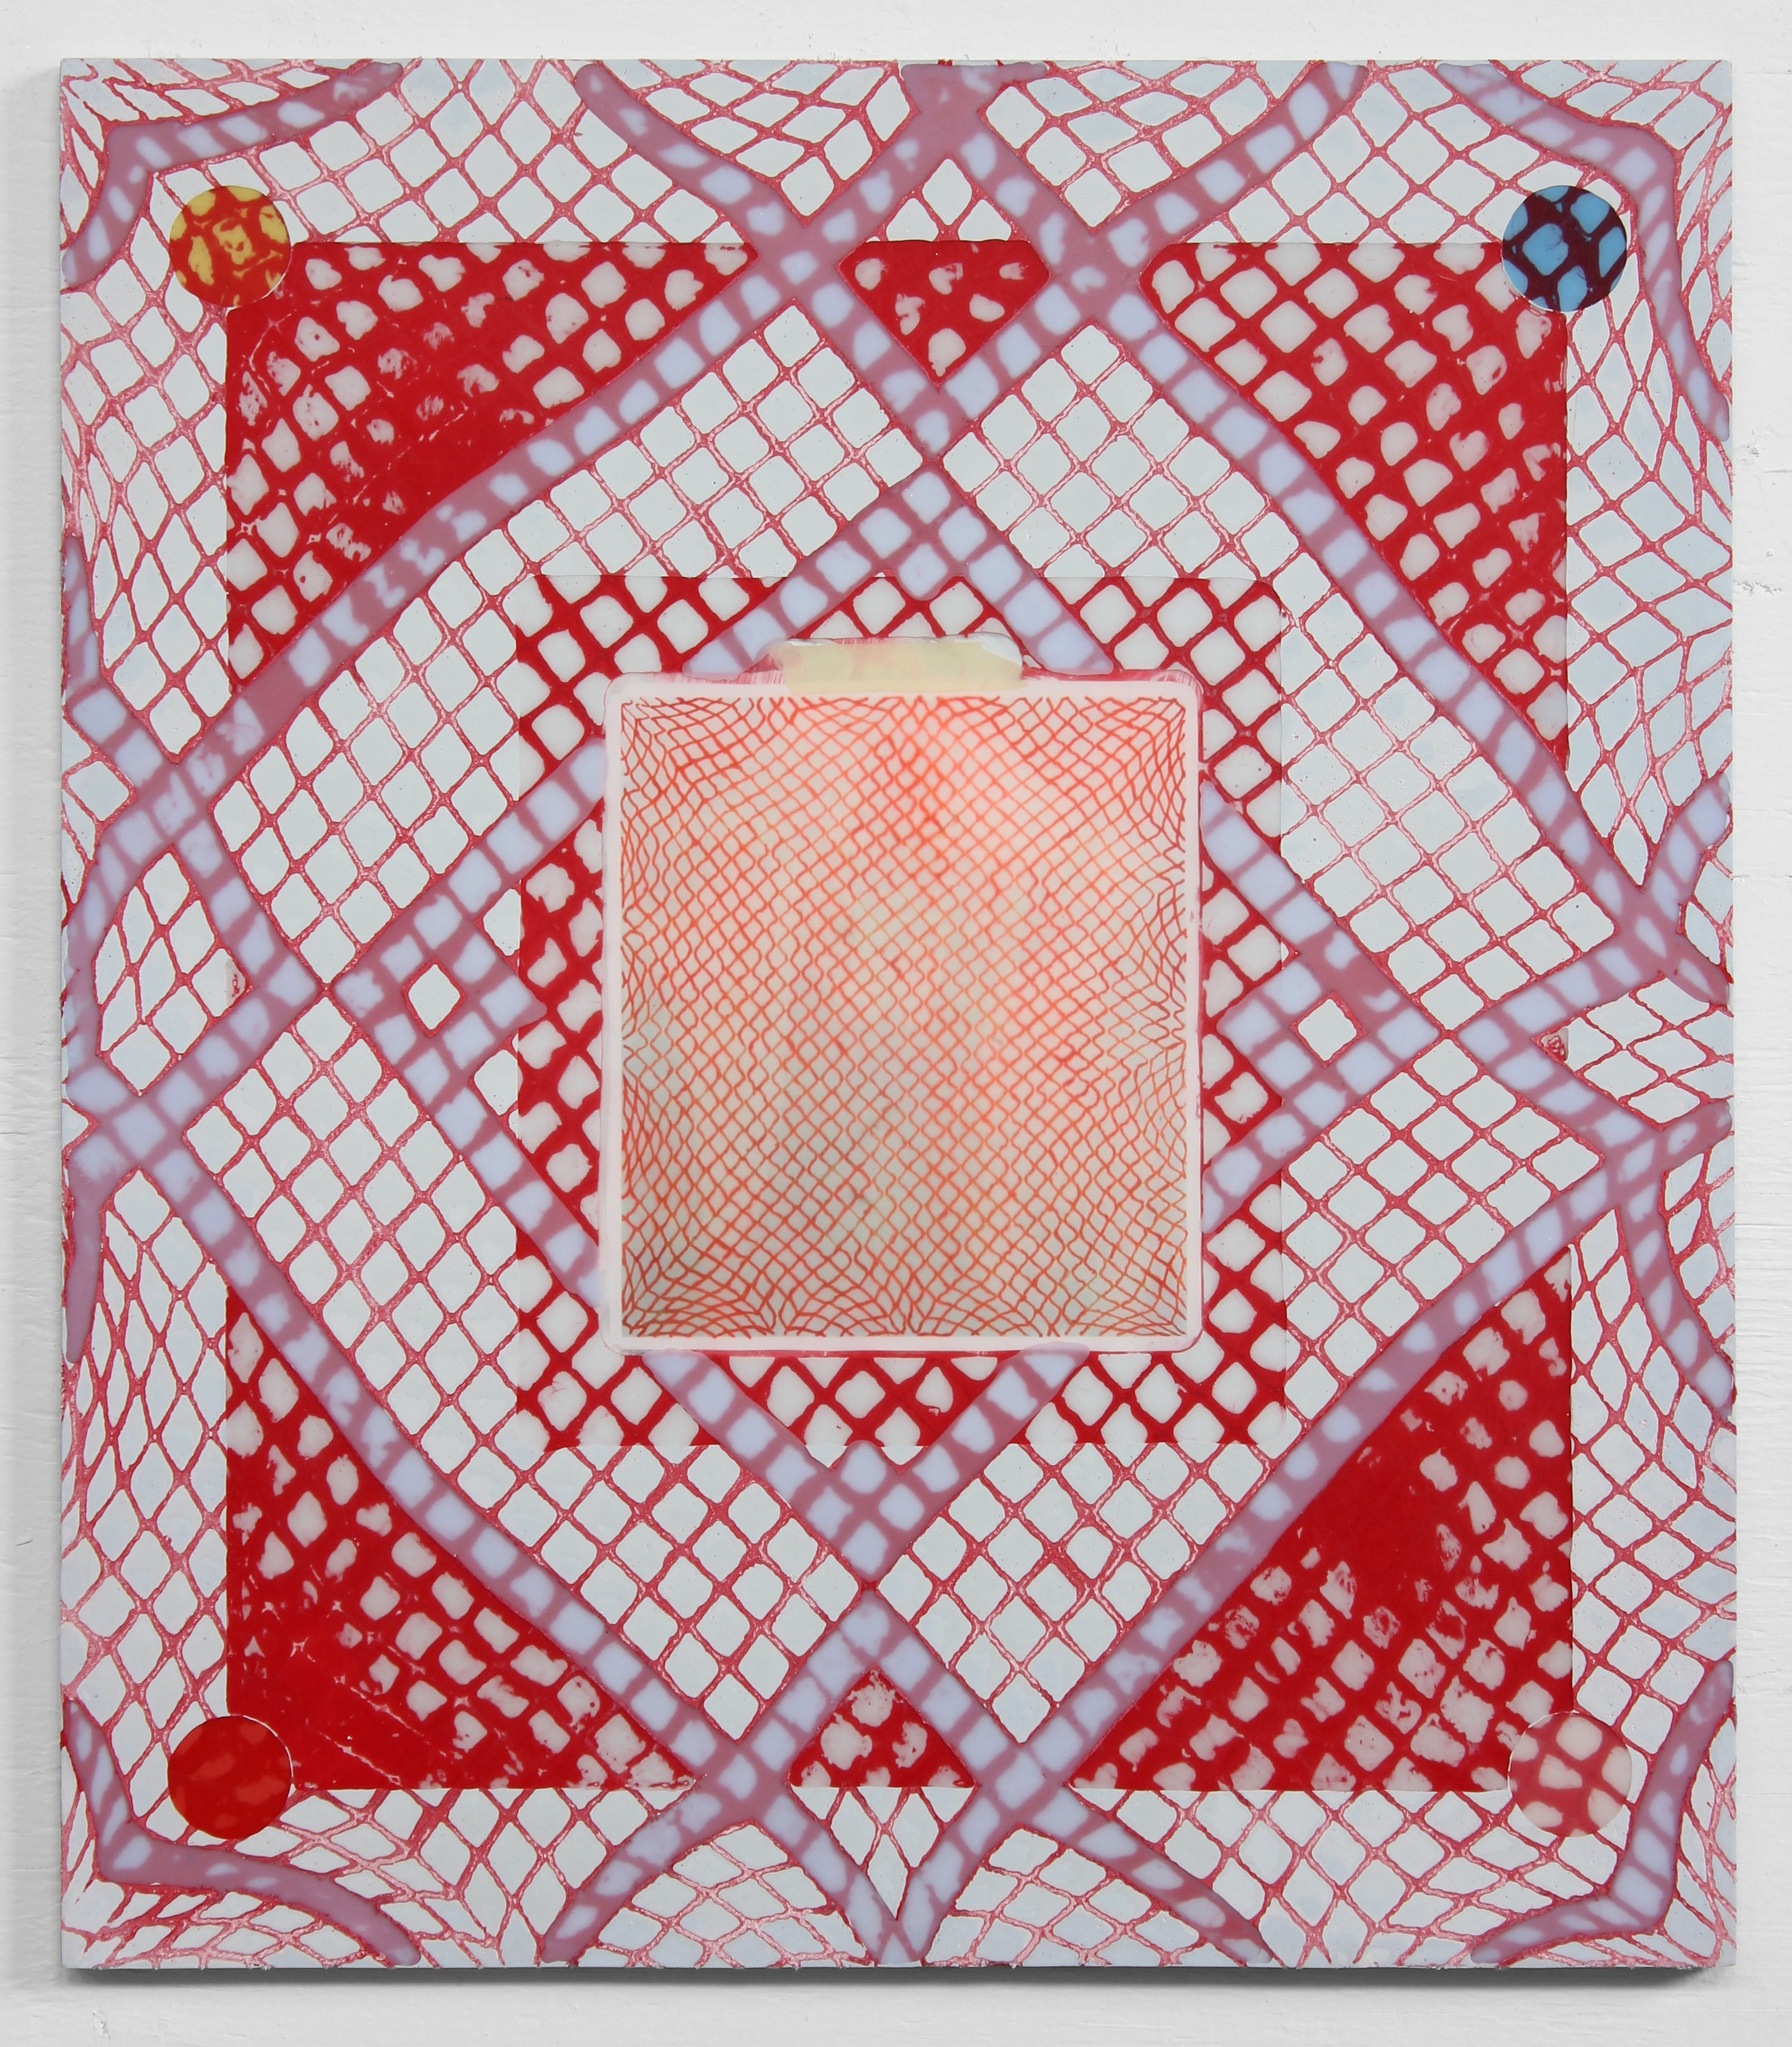 "Red Grid (Insert), 2018, Resin, net, and drawing on ACM panel,  24"" x 21"""